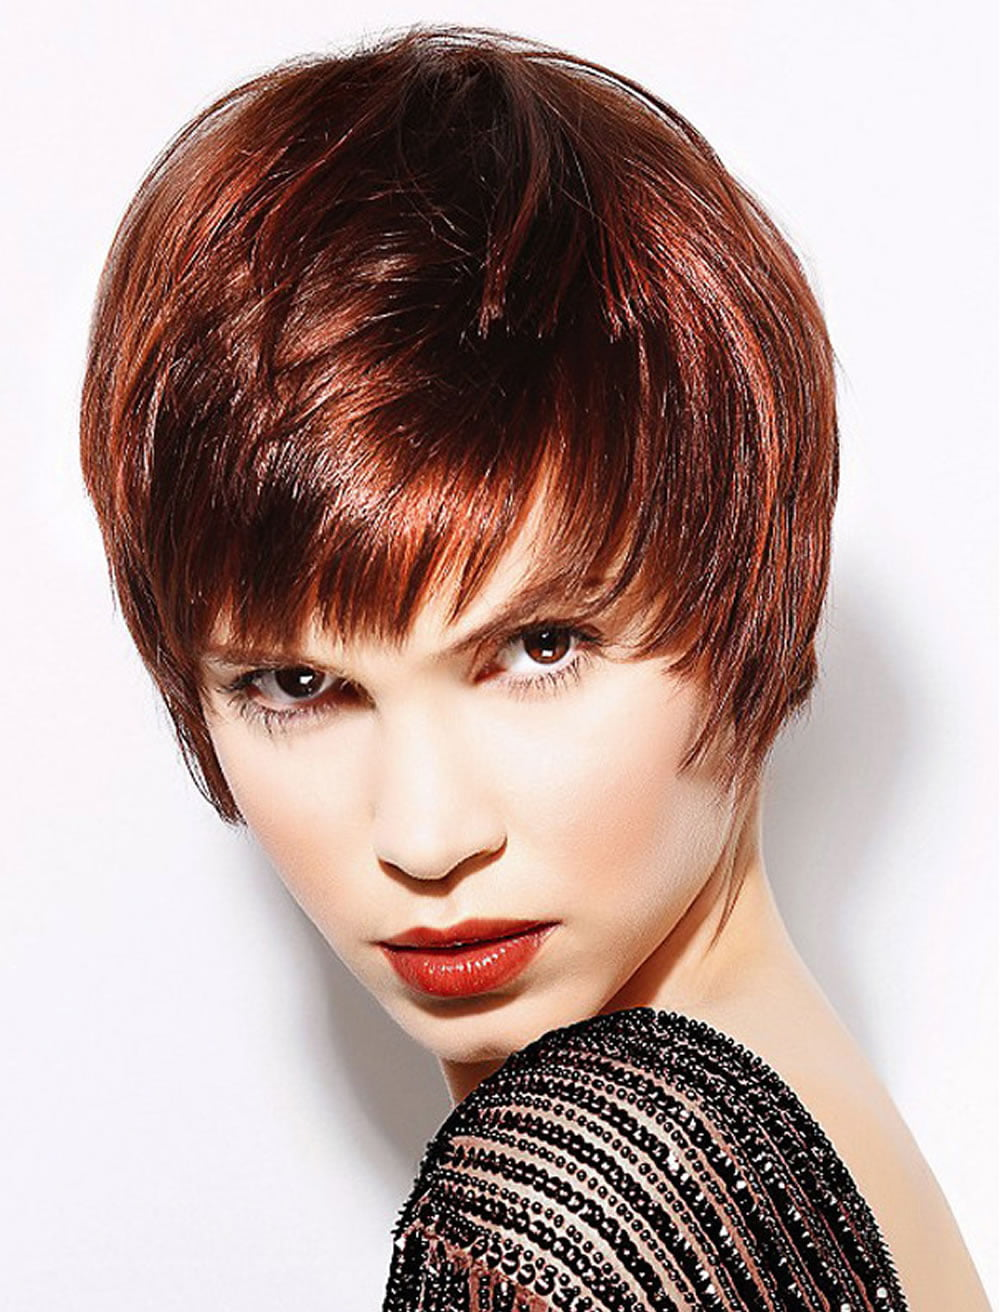 Short Hair Hairstyles for Spring & Summer 2020 - 2021